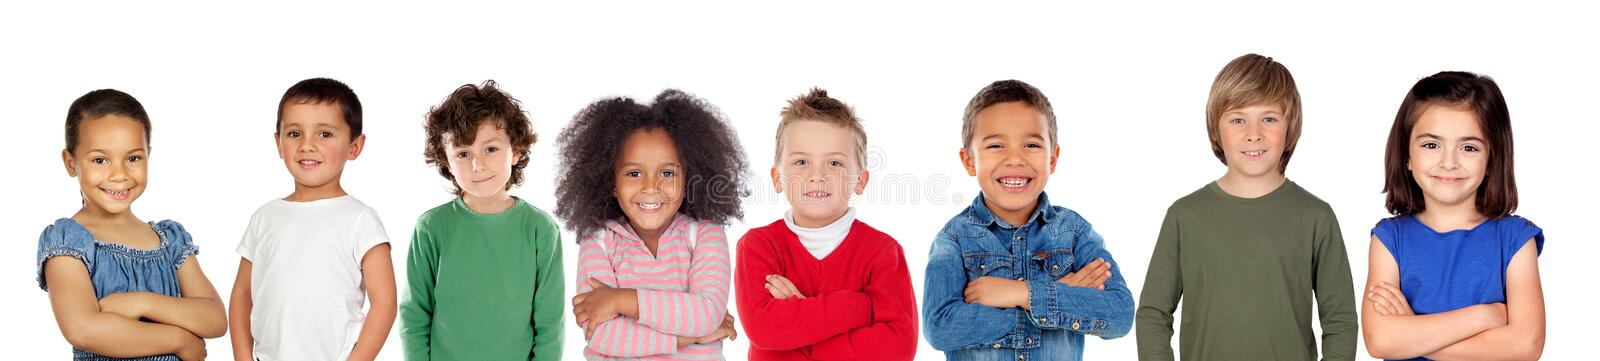 Children looking at camera royalty free stock photography